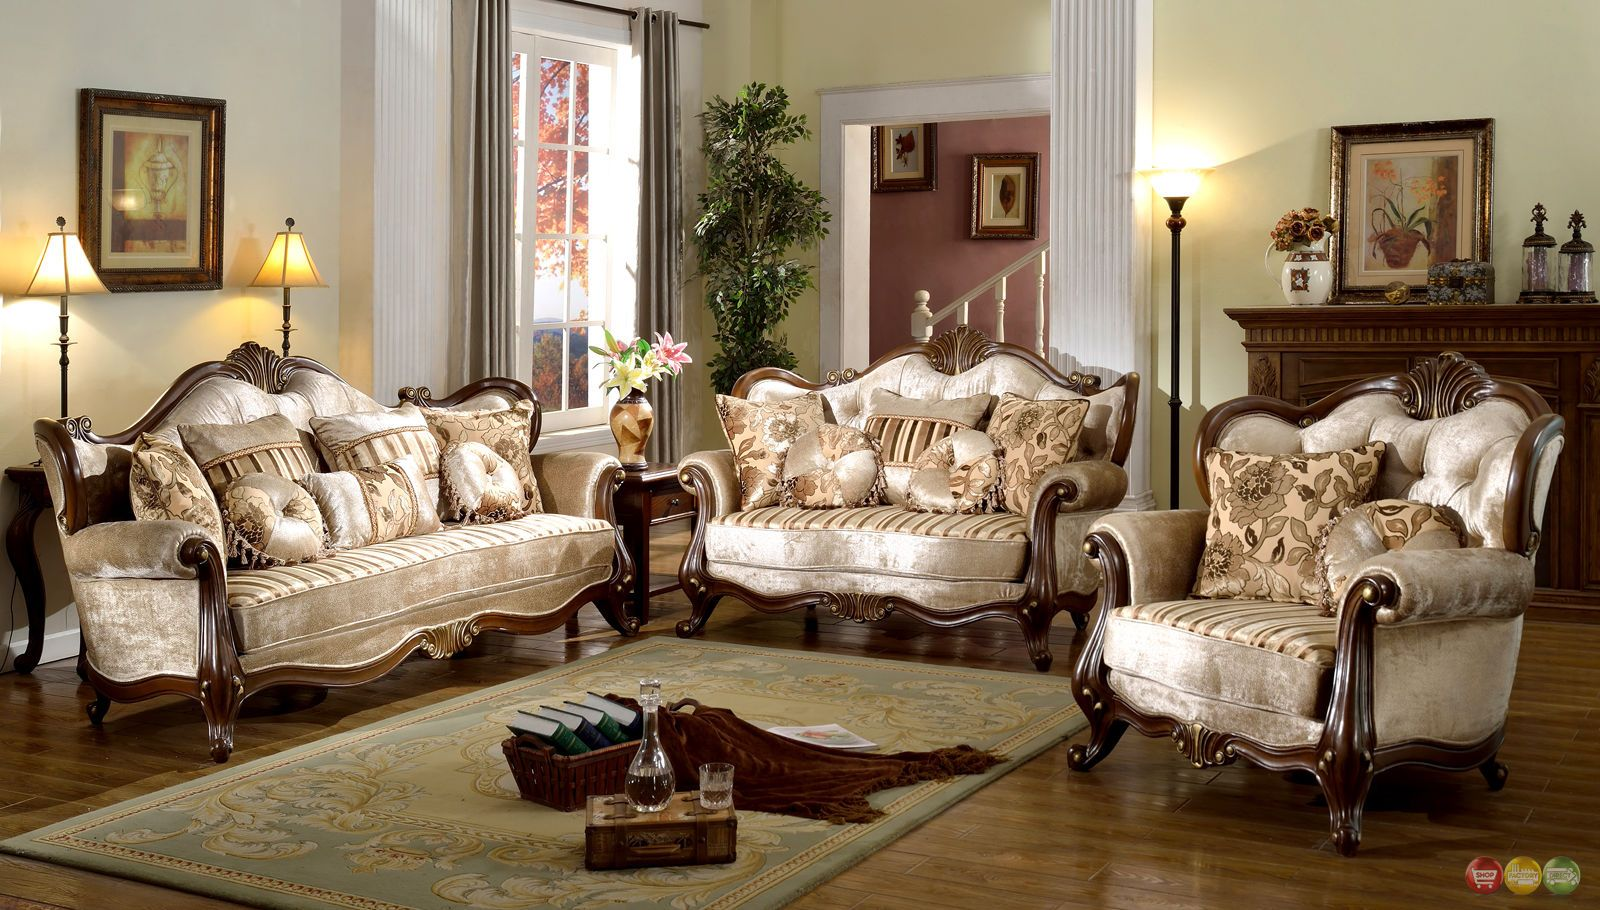 Antique French Provincial Living Room Furniture - https://www